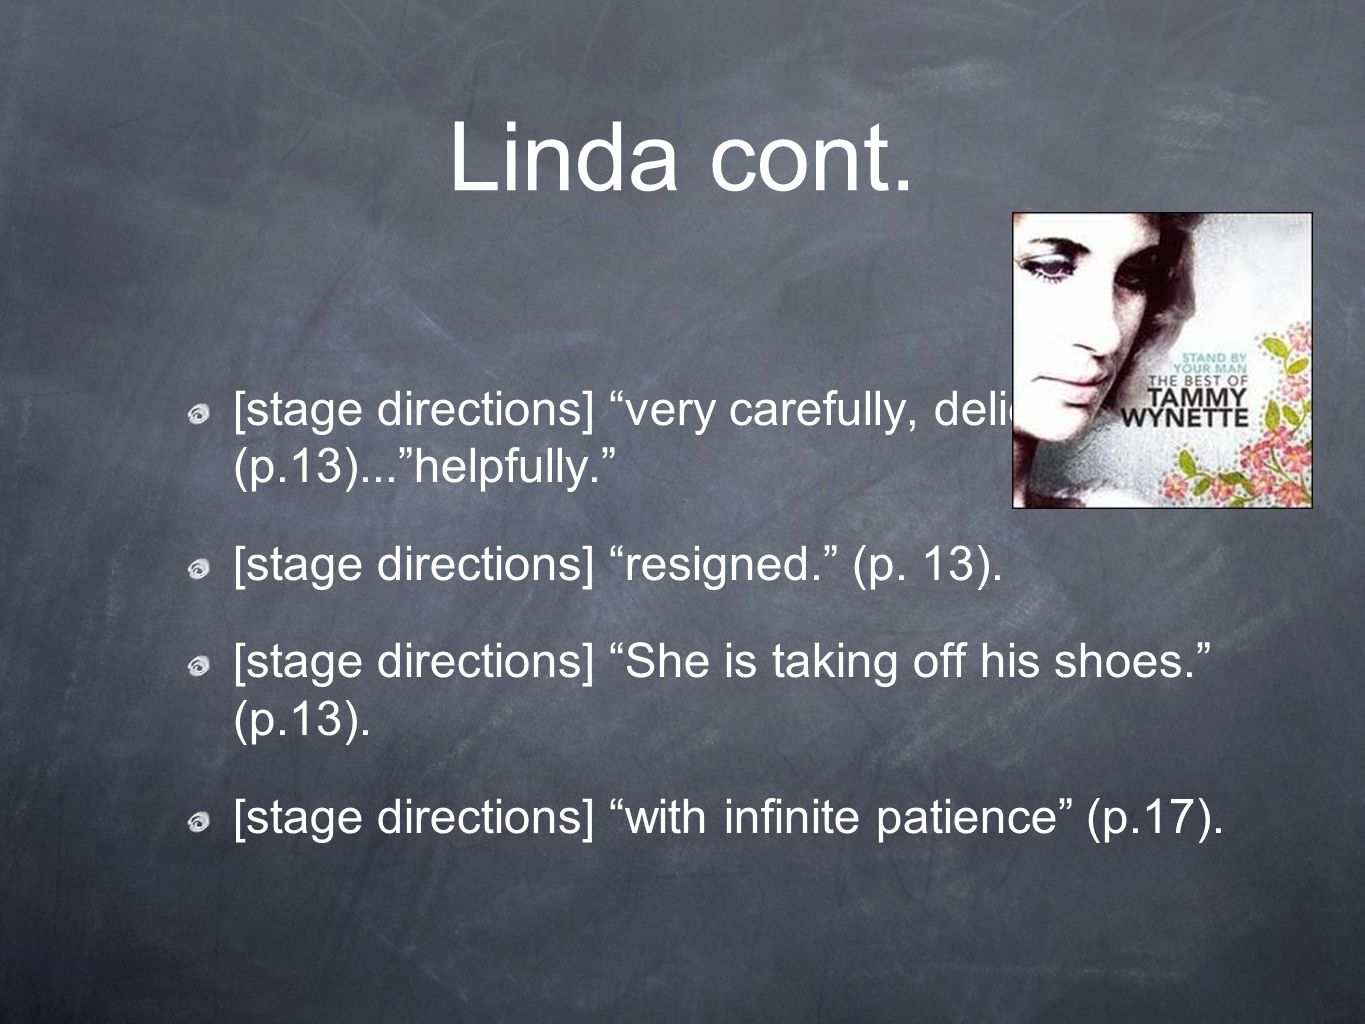 Linda cont. [stage directions] very carefully, delicately. (p.13)...helpfully. [stage directions] resigned. (p. 13). [stage directions] She is taking